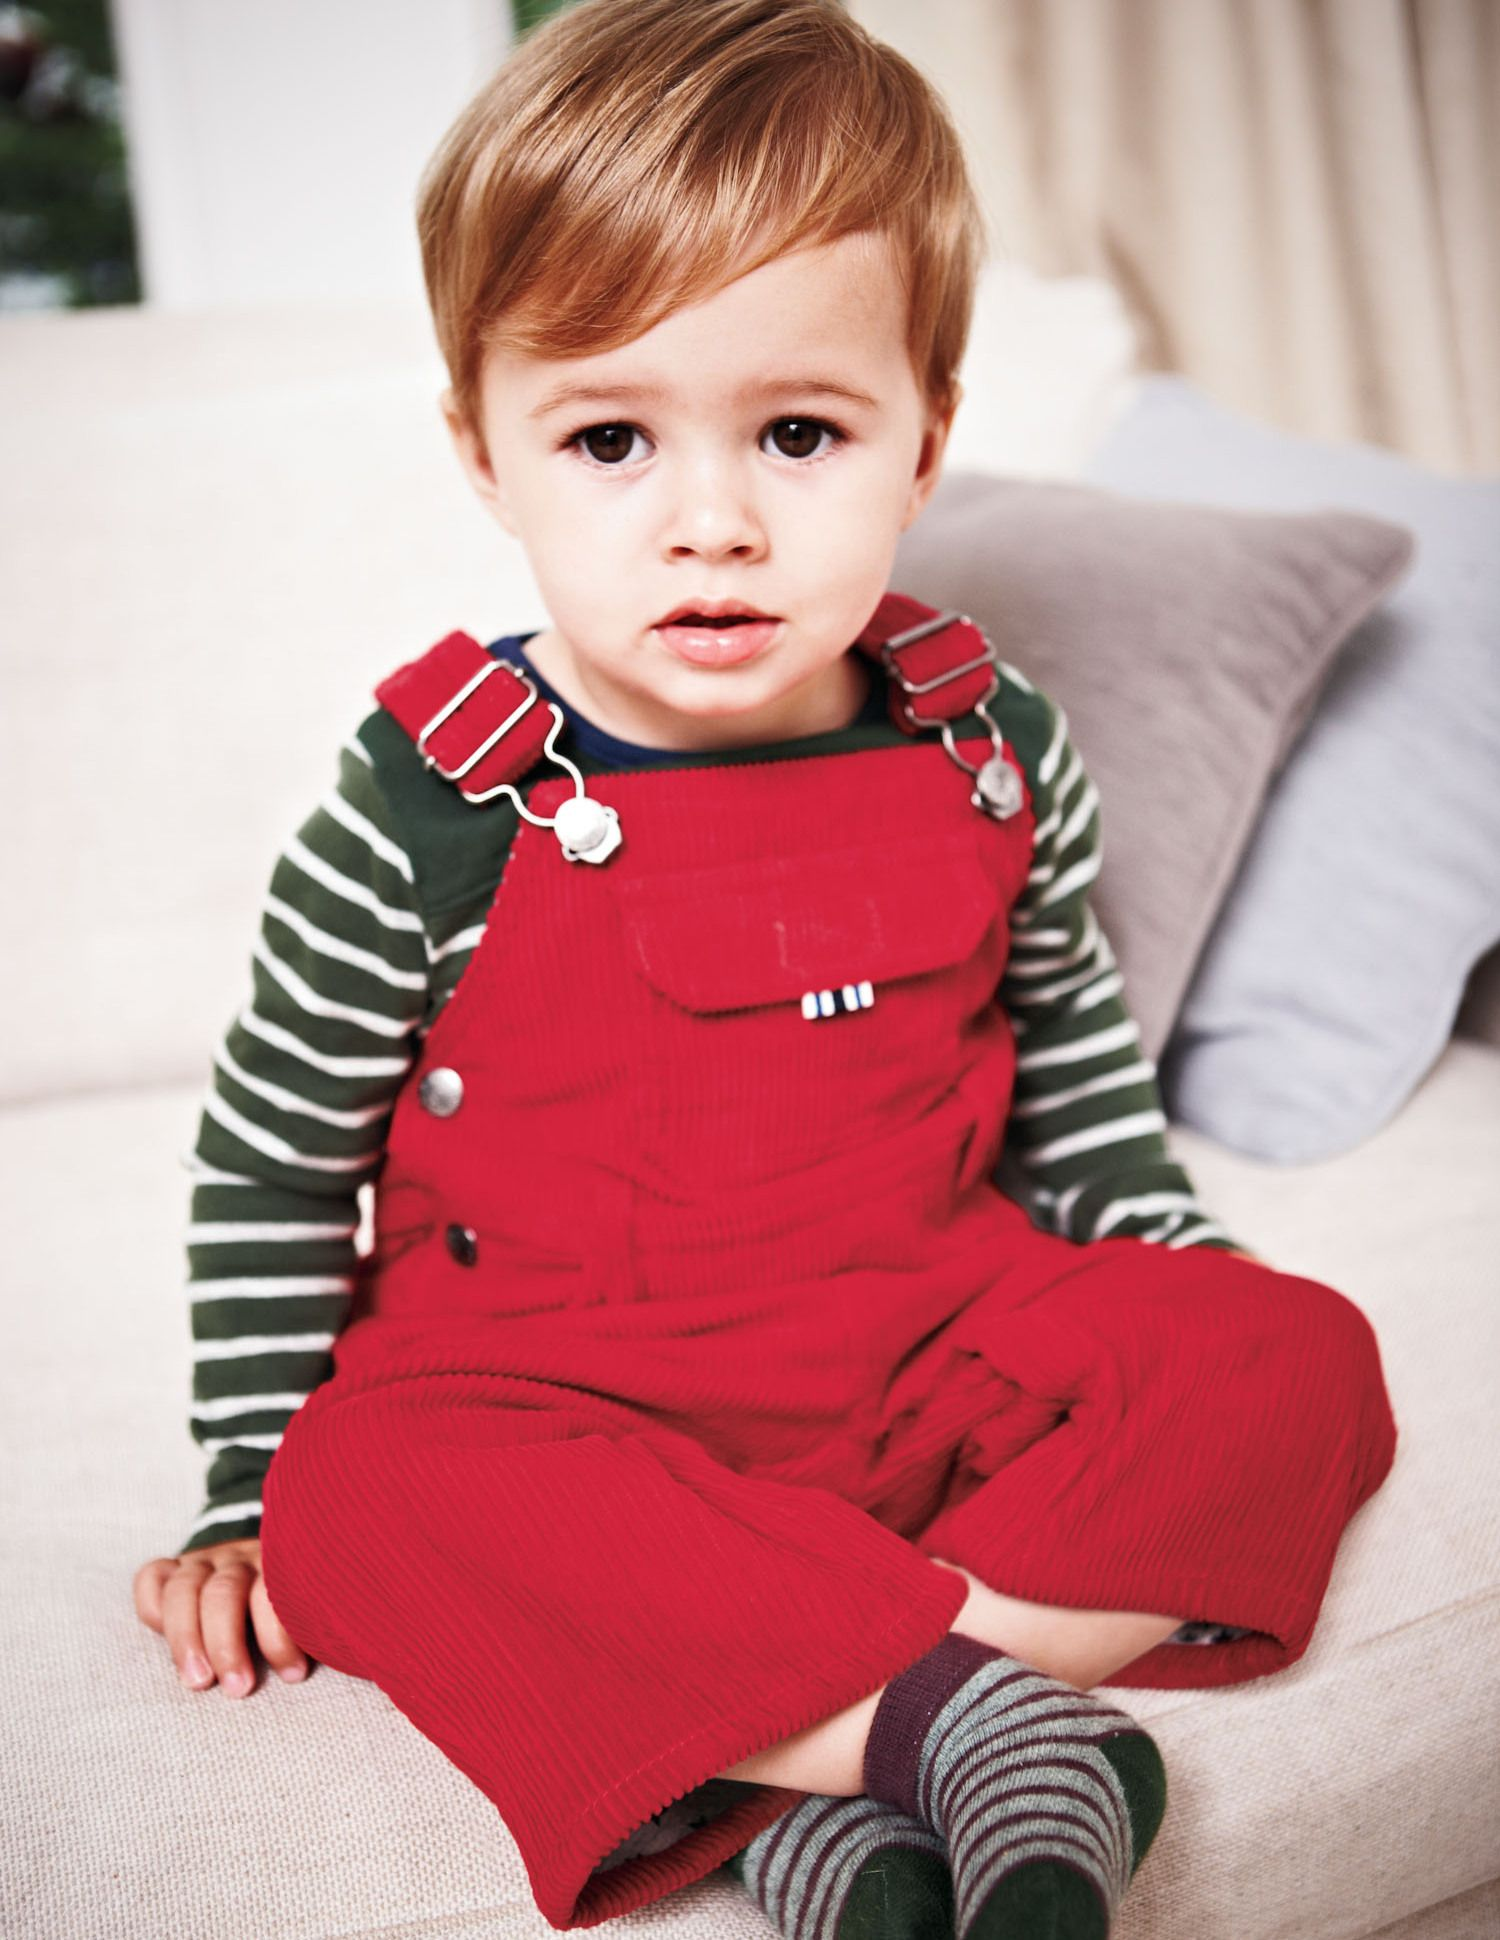 Long hair for toddler boy love these little boy clothes  baby stuff  pinterest  haircuts